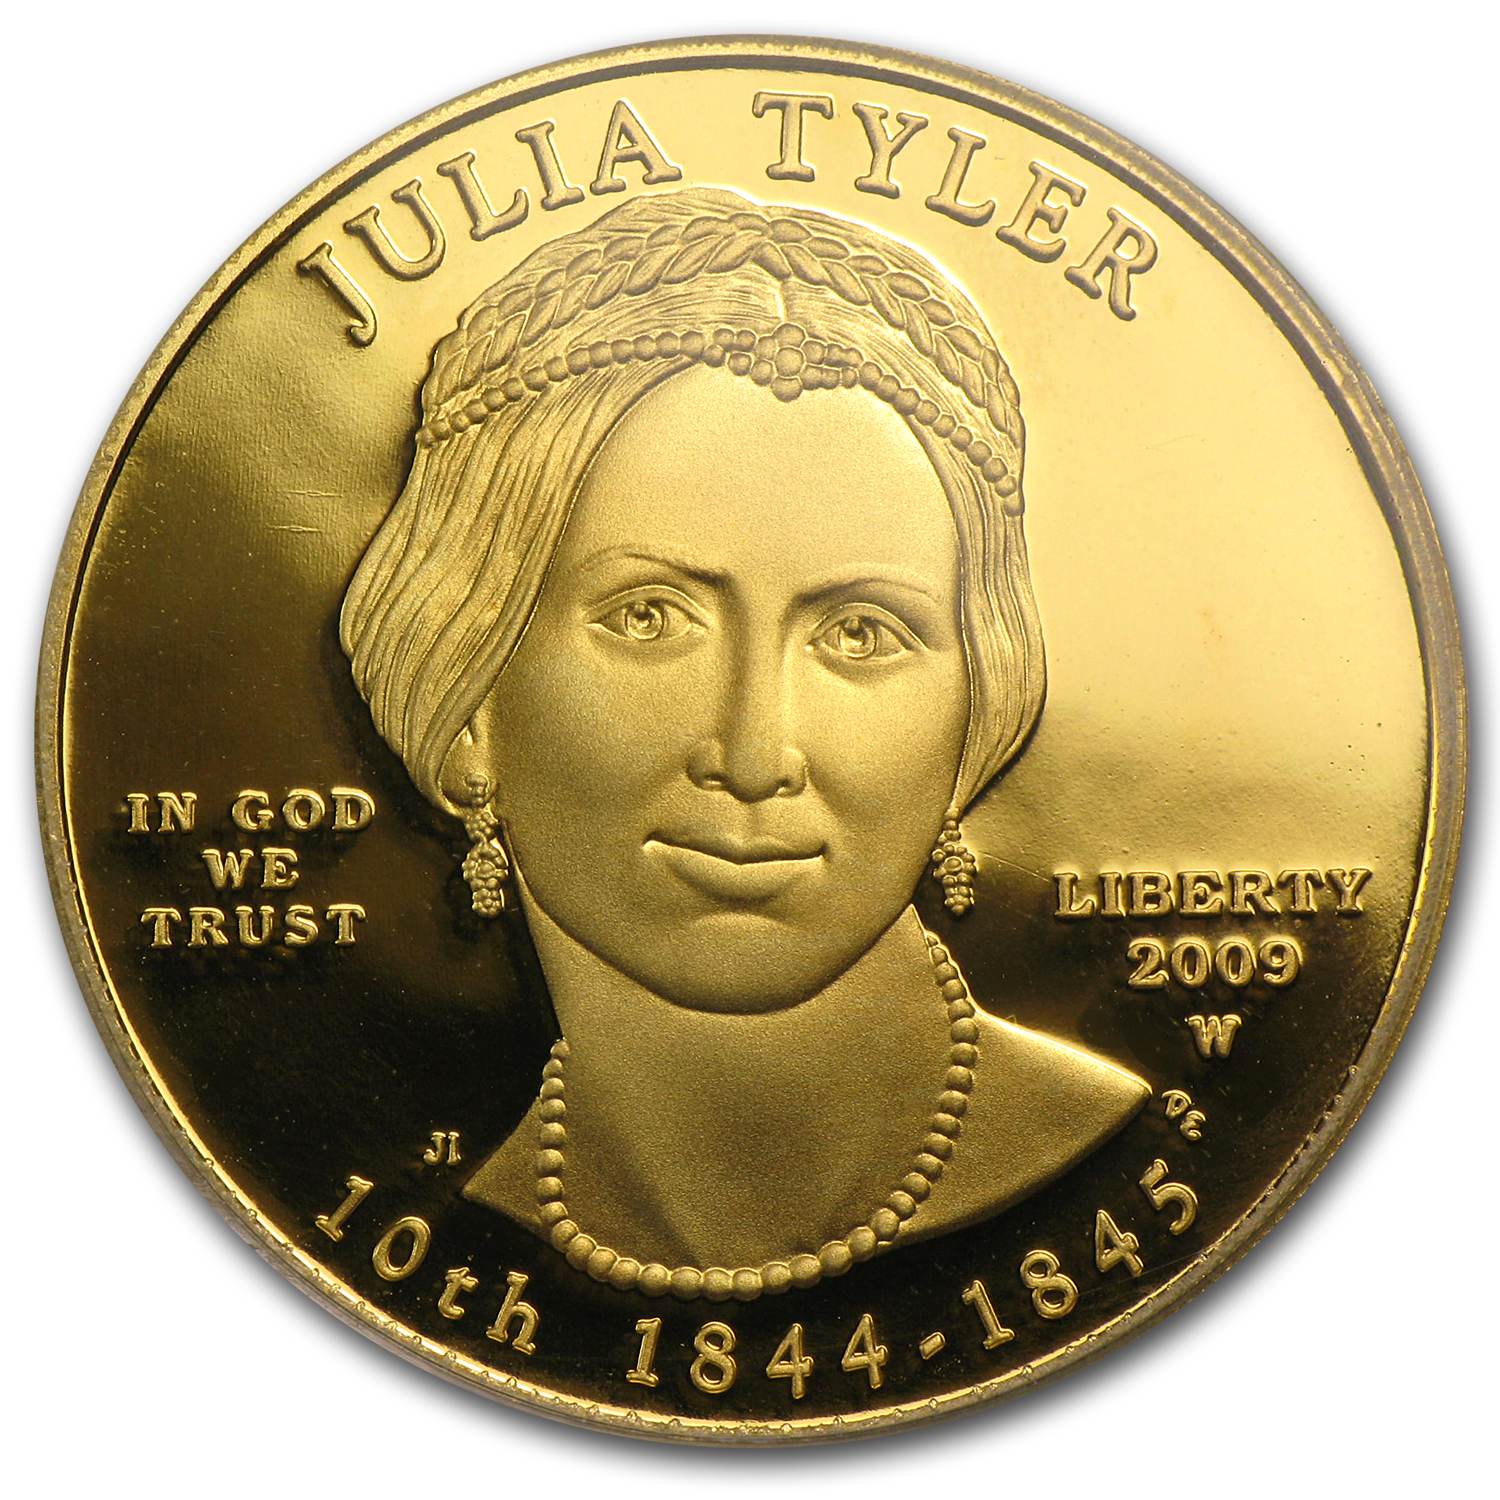 2009-W 1/2 oz Proof Gold Julia Tyler PR-69 PCGS (First Strike)